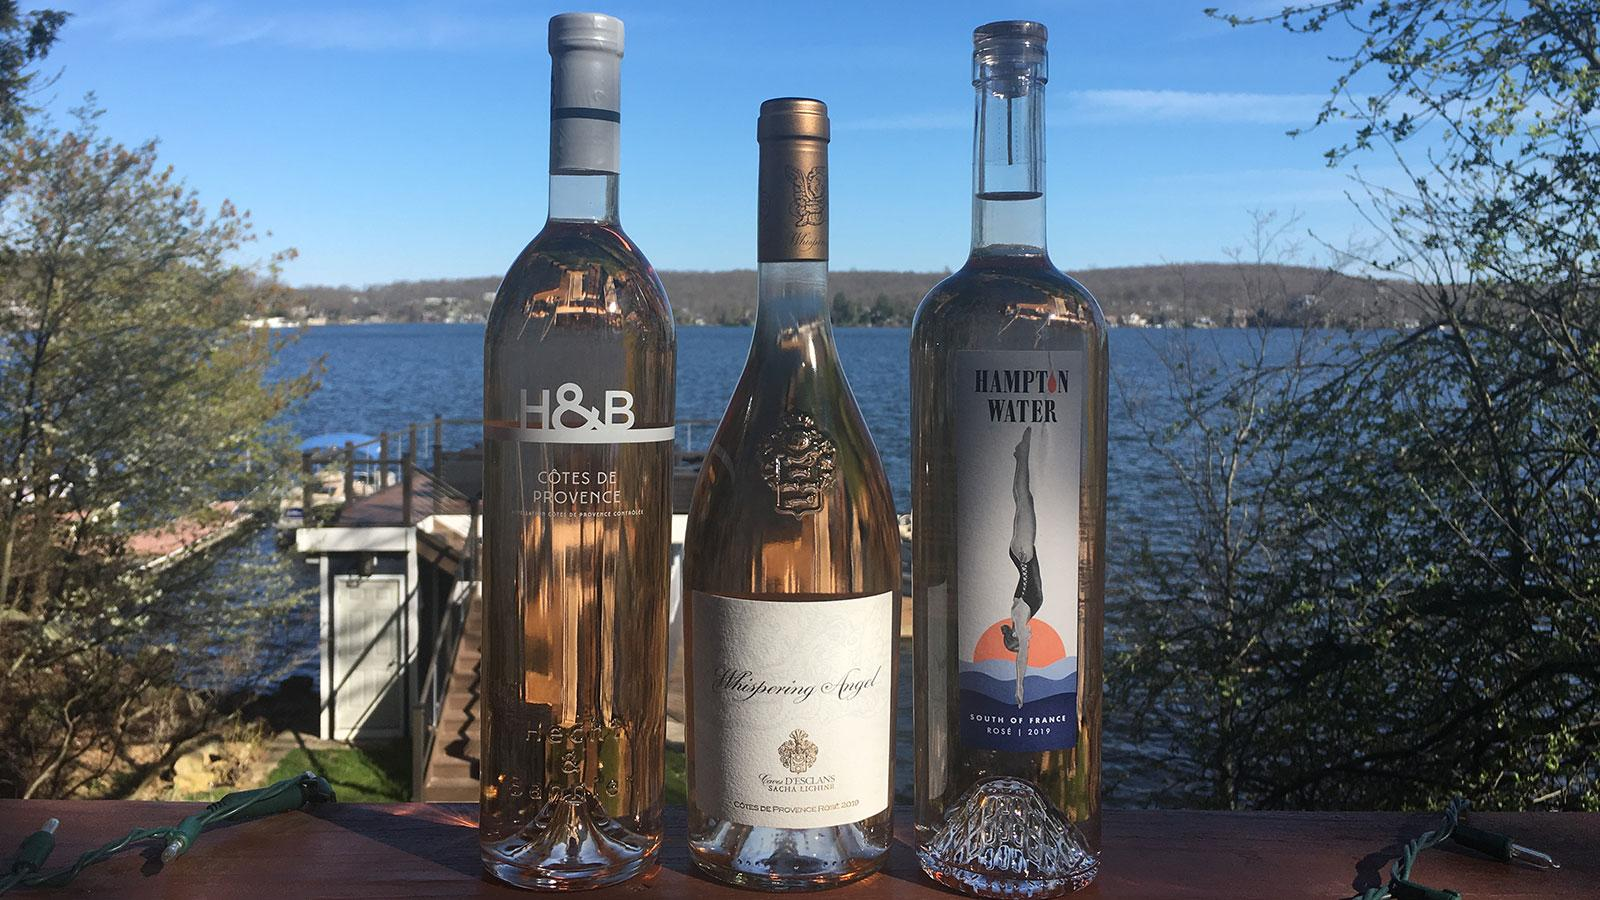 Staying Home: Sunshine, Fresh Air and a Trio of Rosés